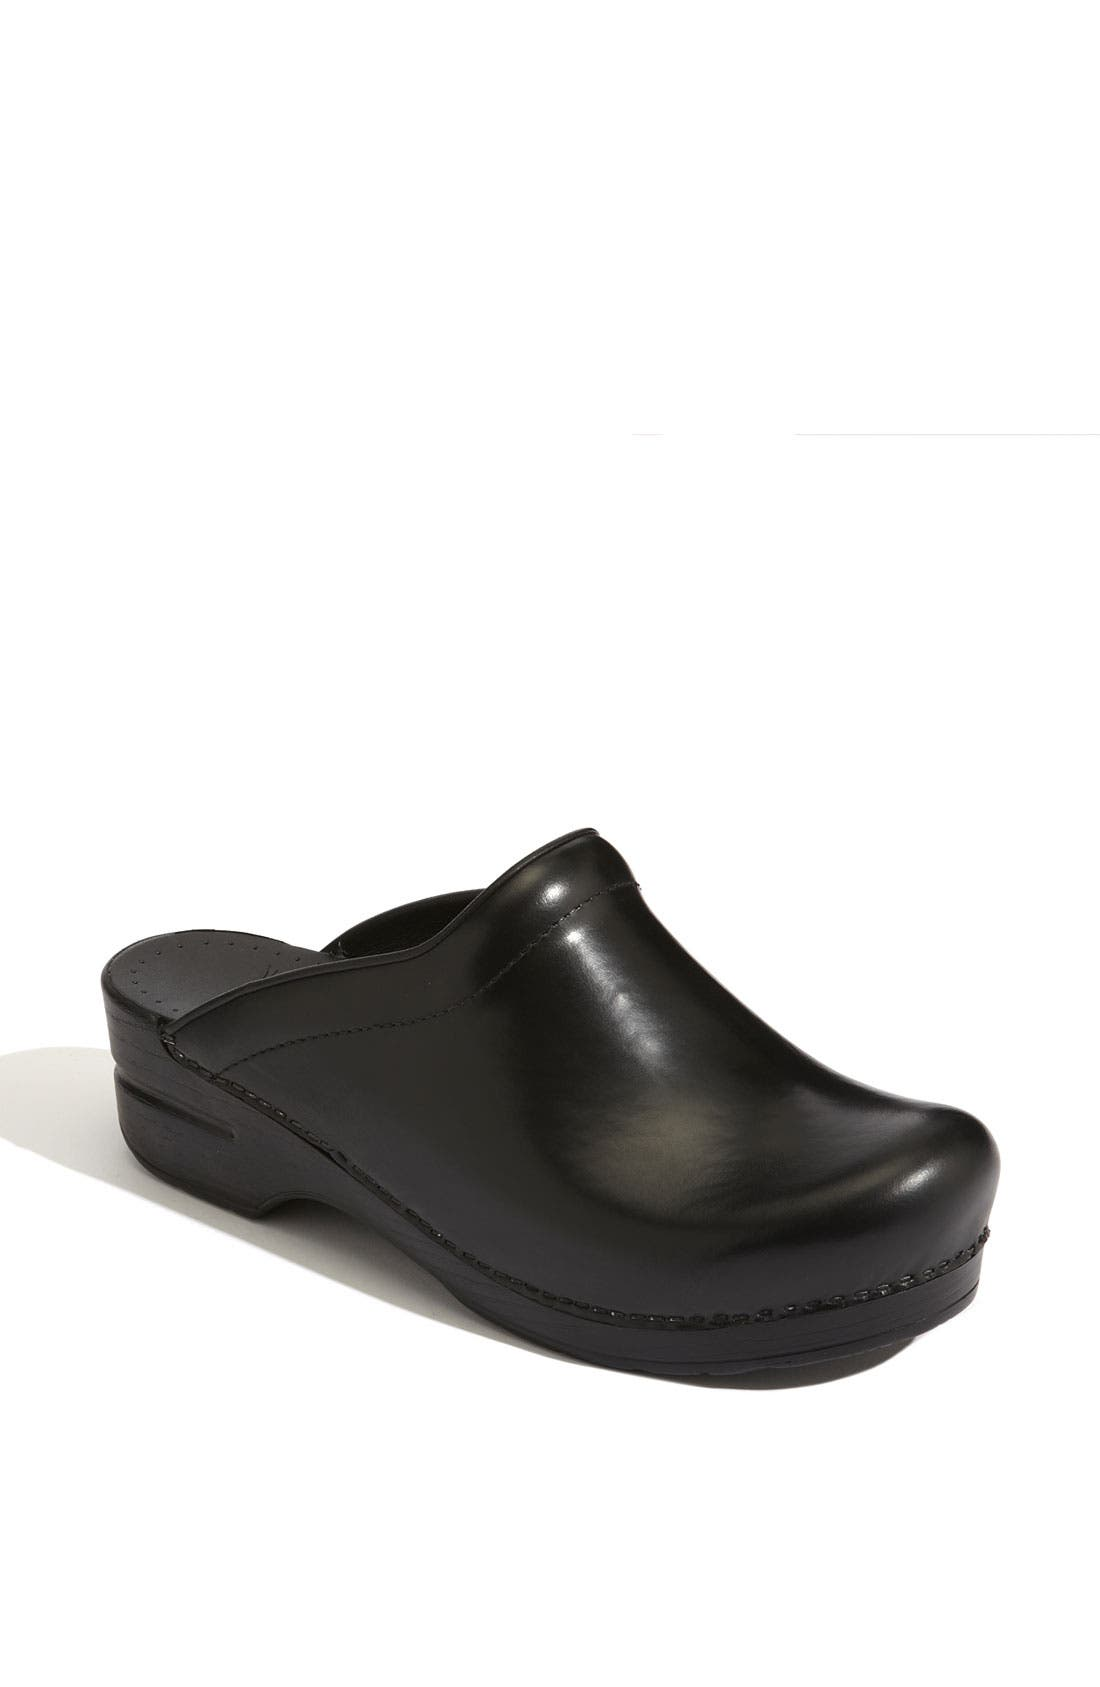 Main Image - Dansko 'Sonja' Leather Clog